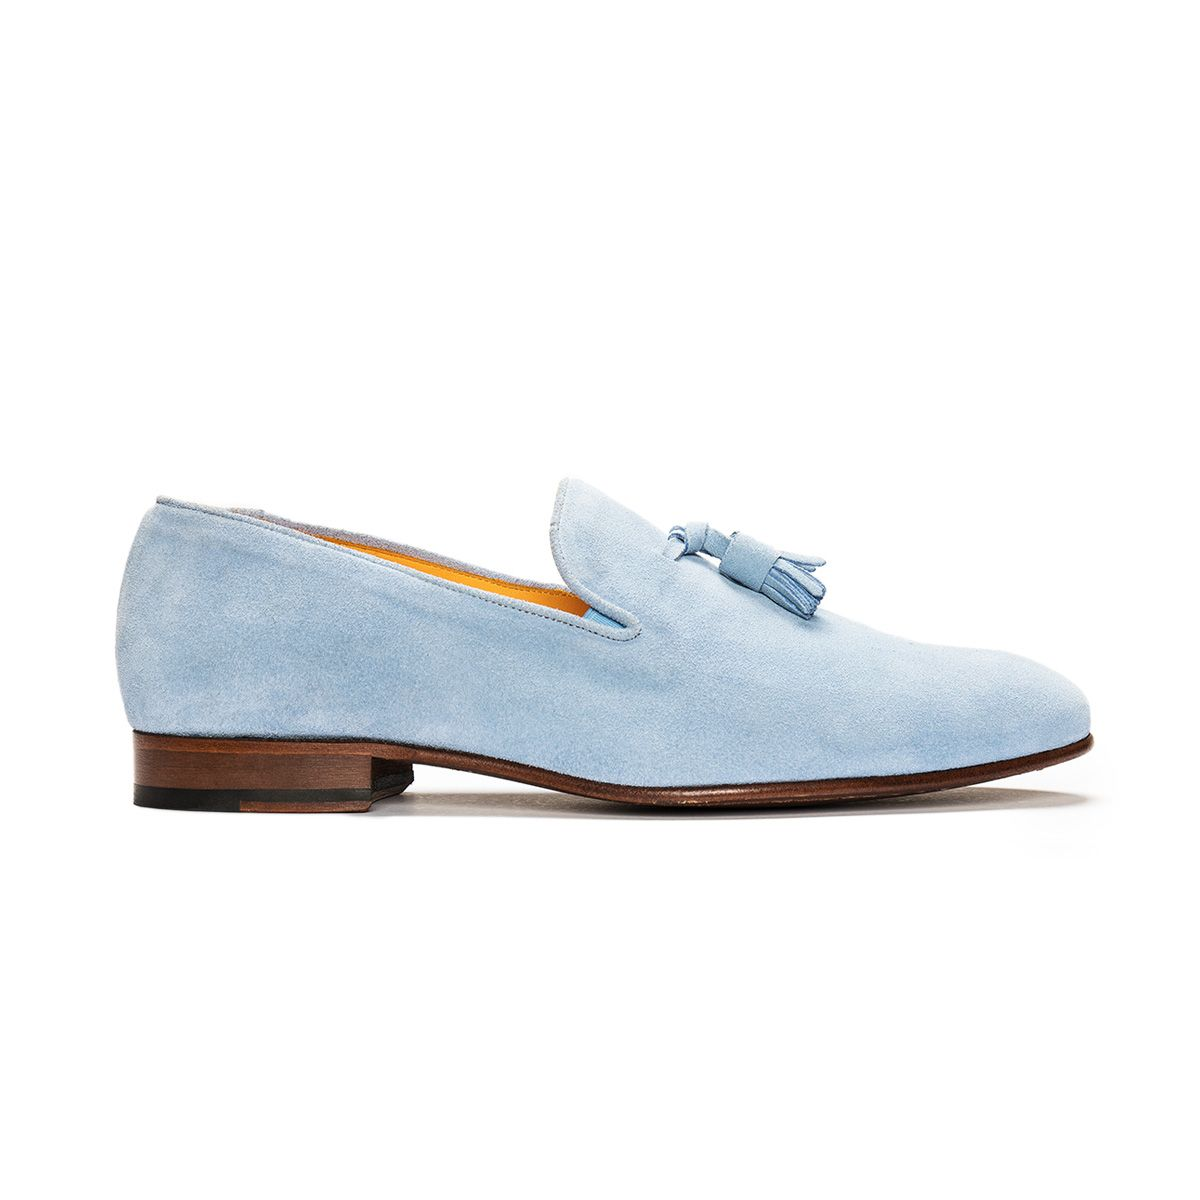 31 by StJohn , Loafer suede blue, tassel